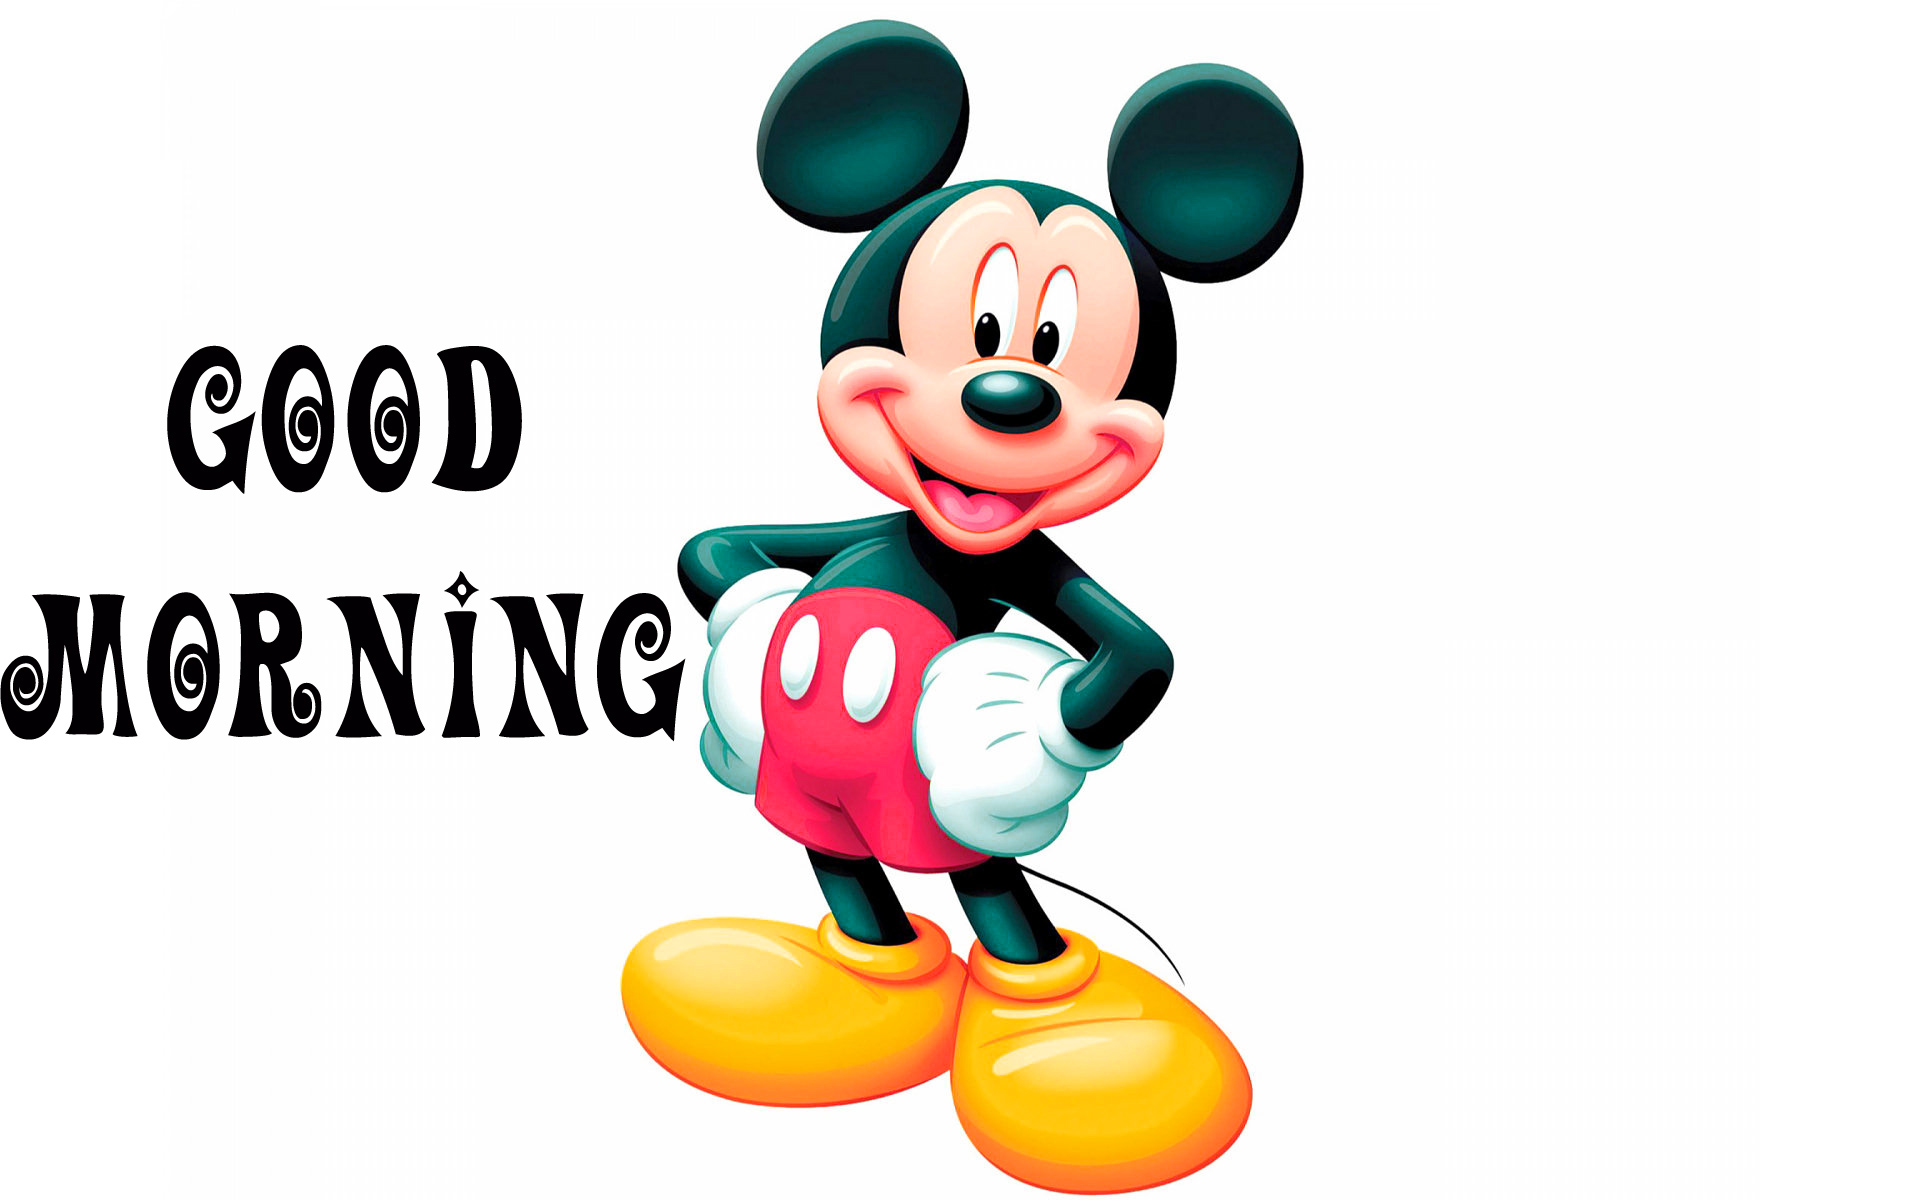 Good morning  wishes with mickey Images  Pics Download Good morning wishes with mickey Images (2)